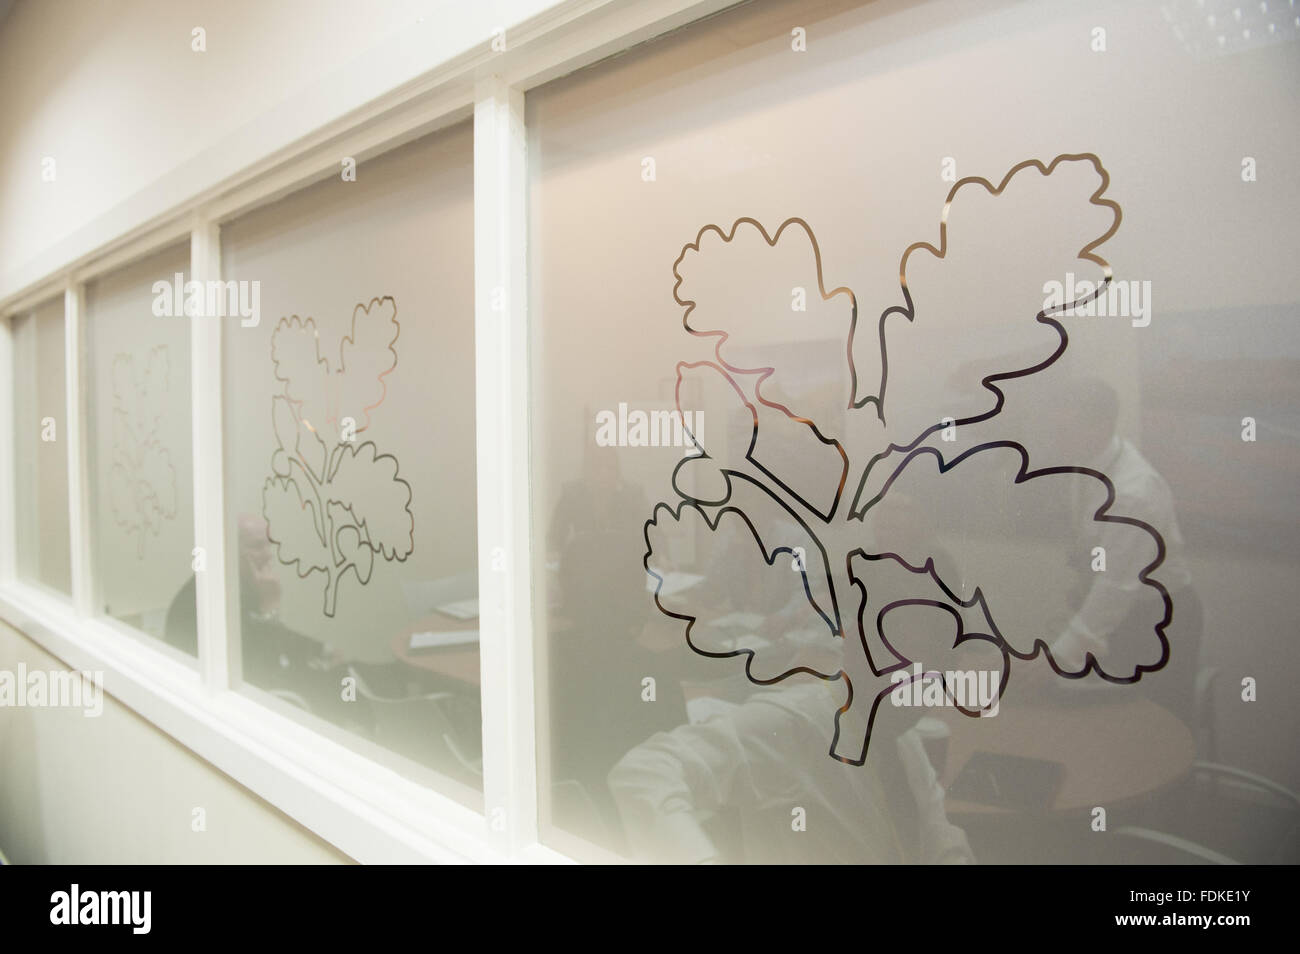 The logo on a glass panel at the National Trust Membership Department at Warrington. - Stock Image